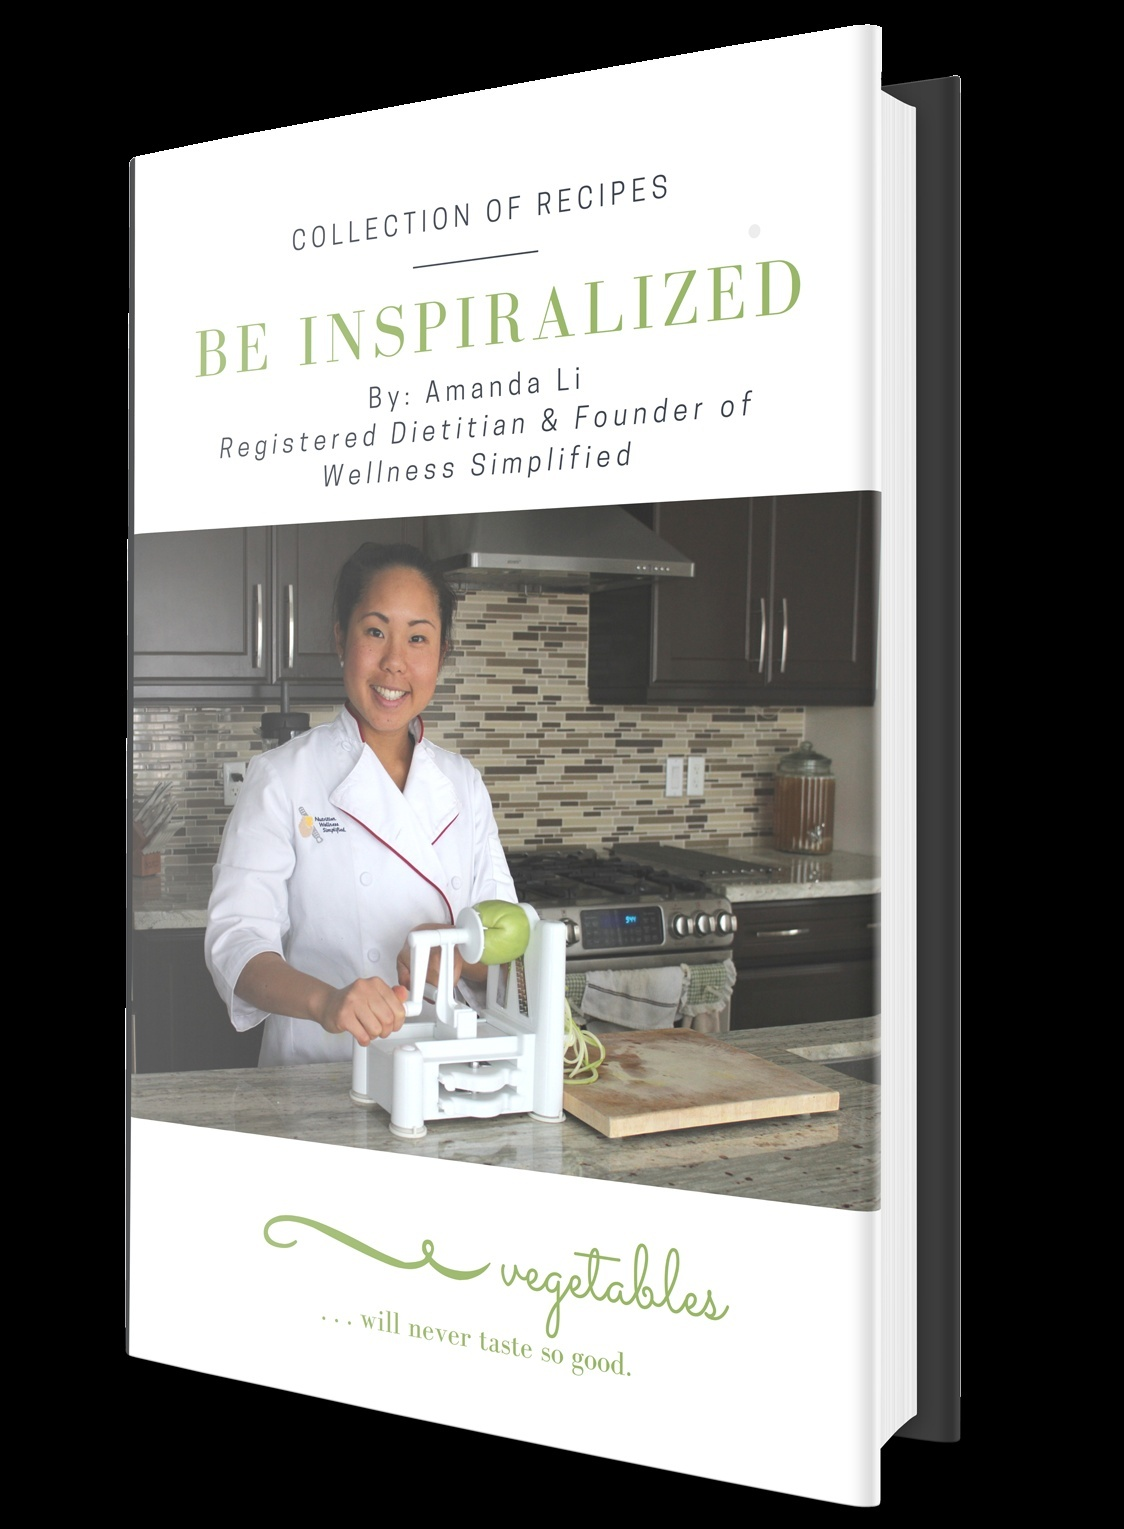 Be Inspiralized Recipe E-Book